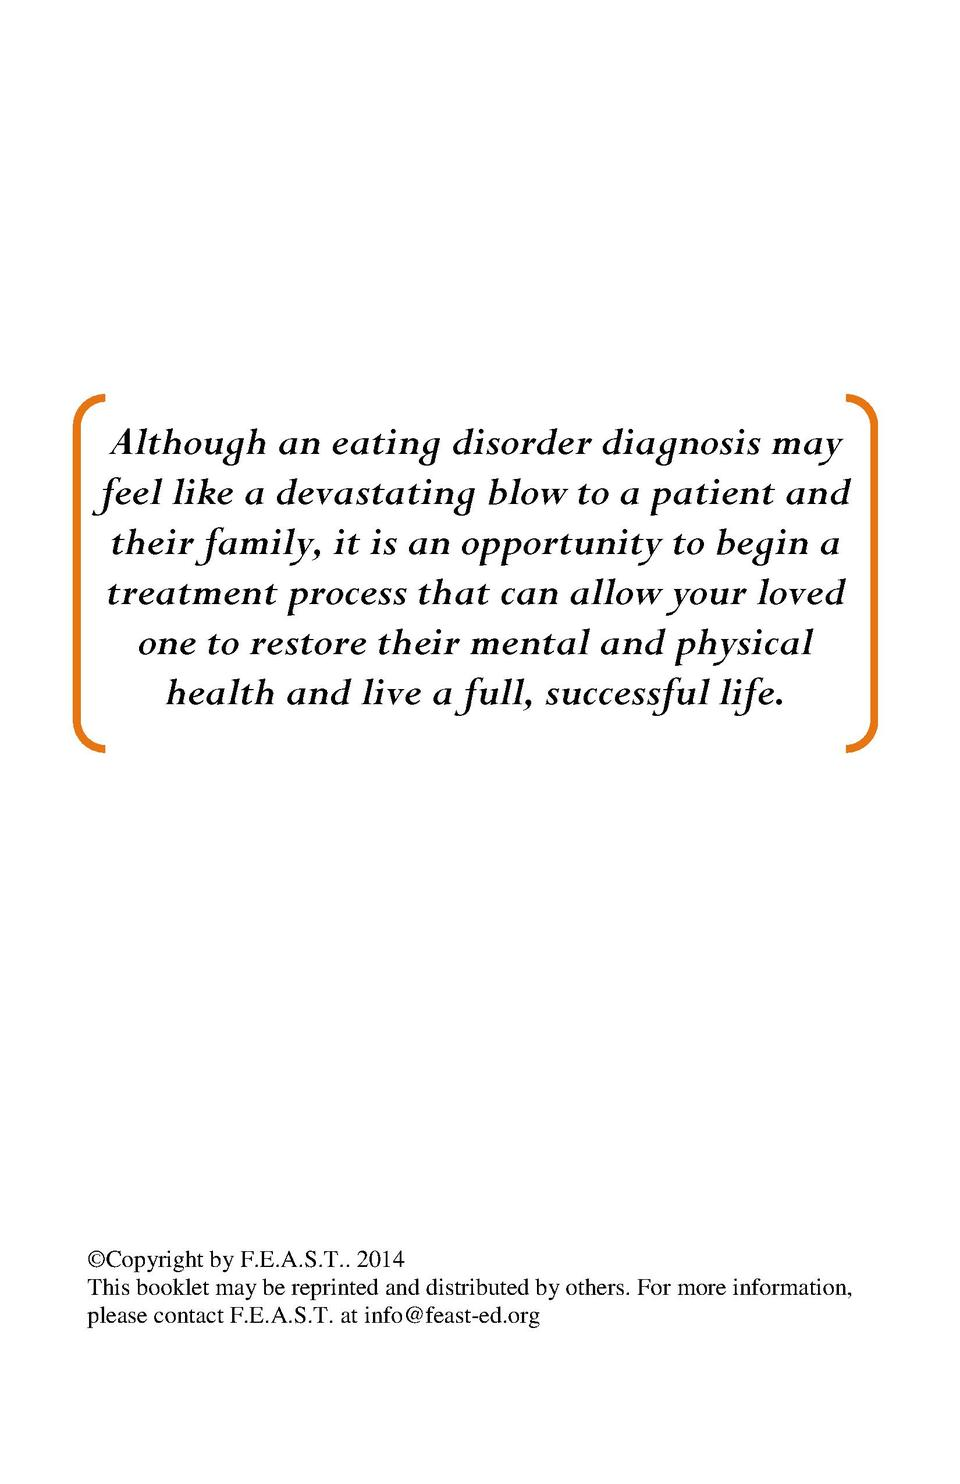 Although an eating disorder diagnosis may feel like a devastating blow to a patient and their family, it is an opportunity...